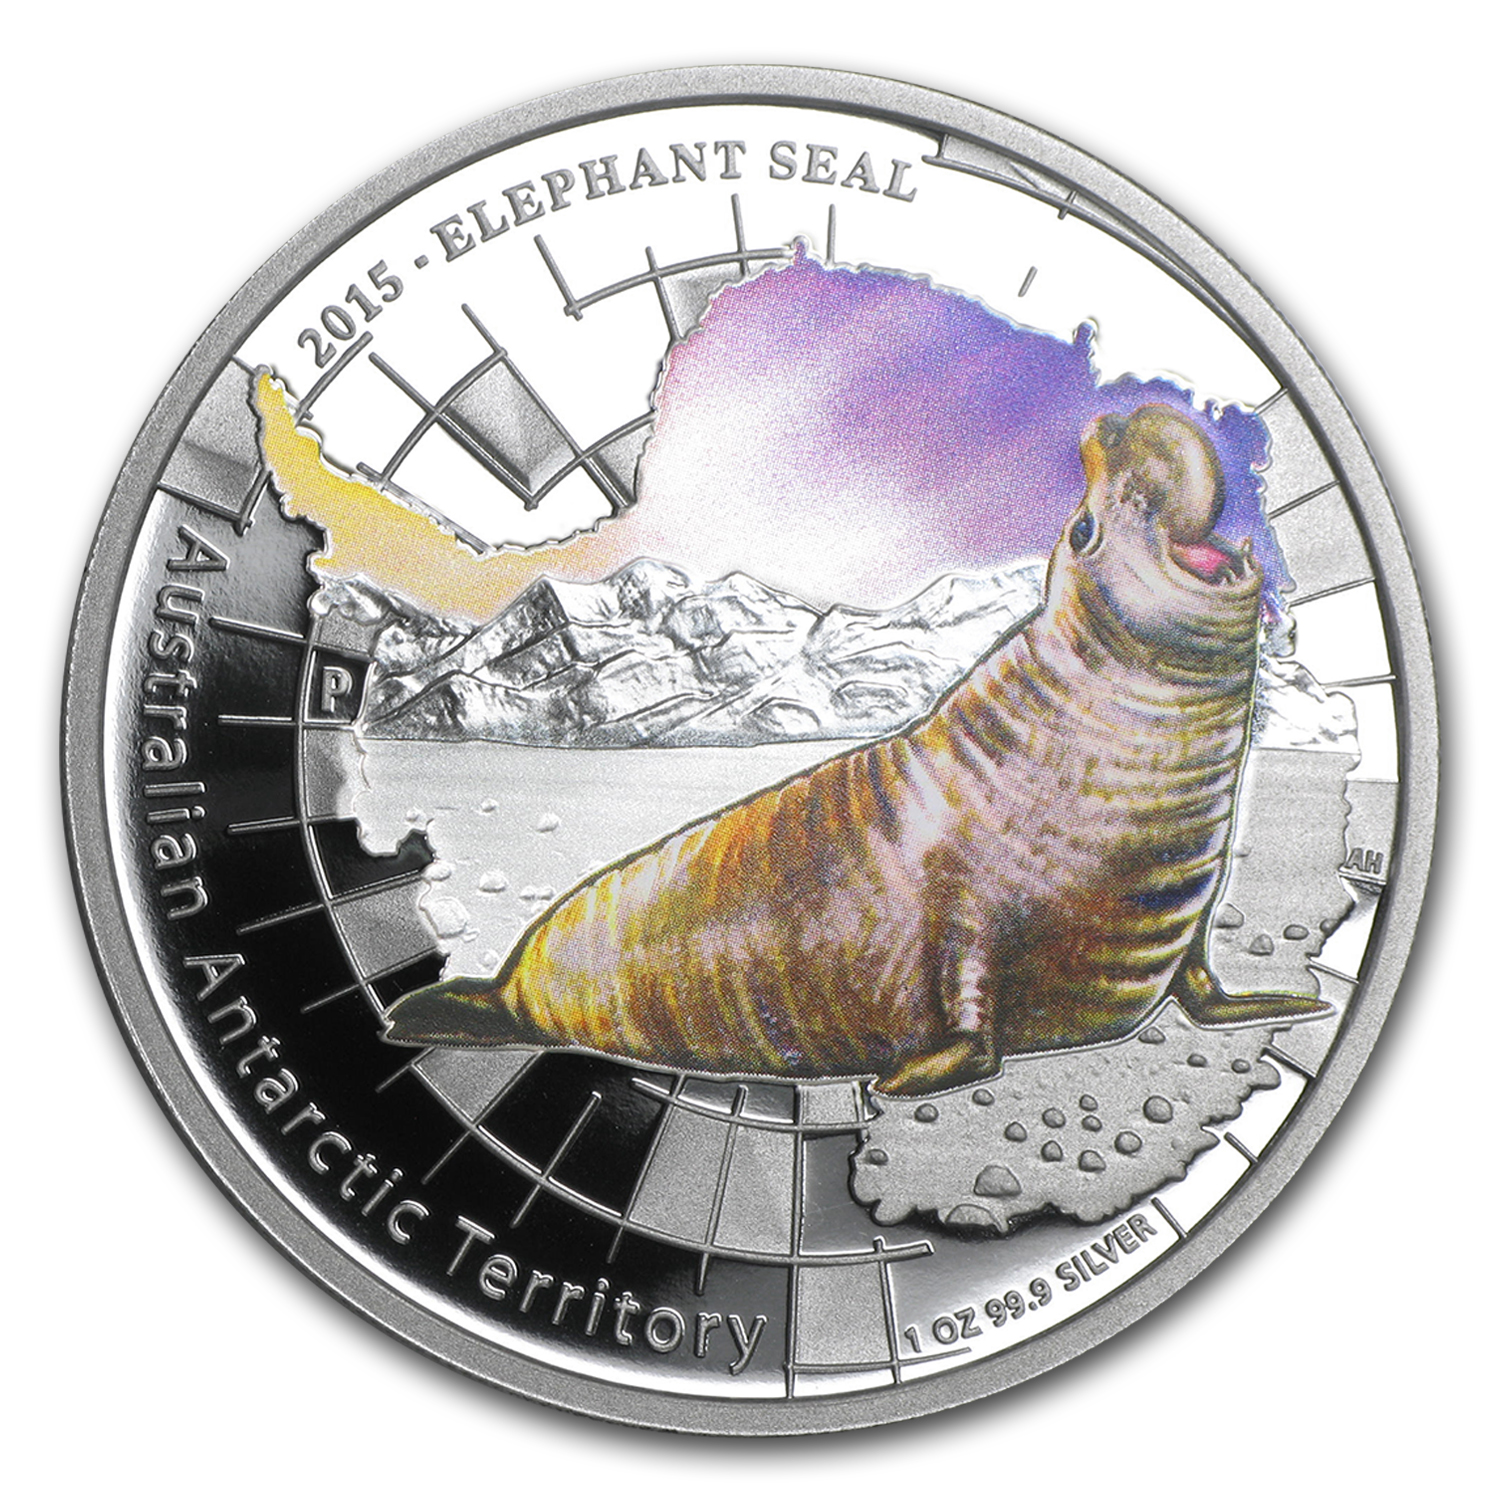 2015 Australia 1 oz Silver Elephant Seal Proof